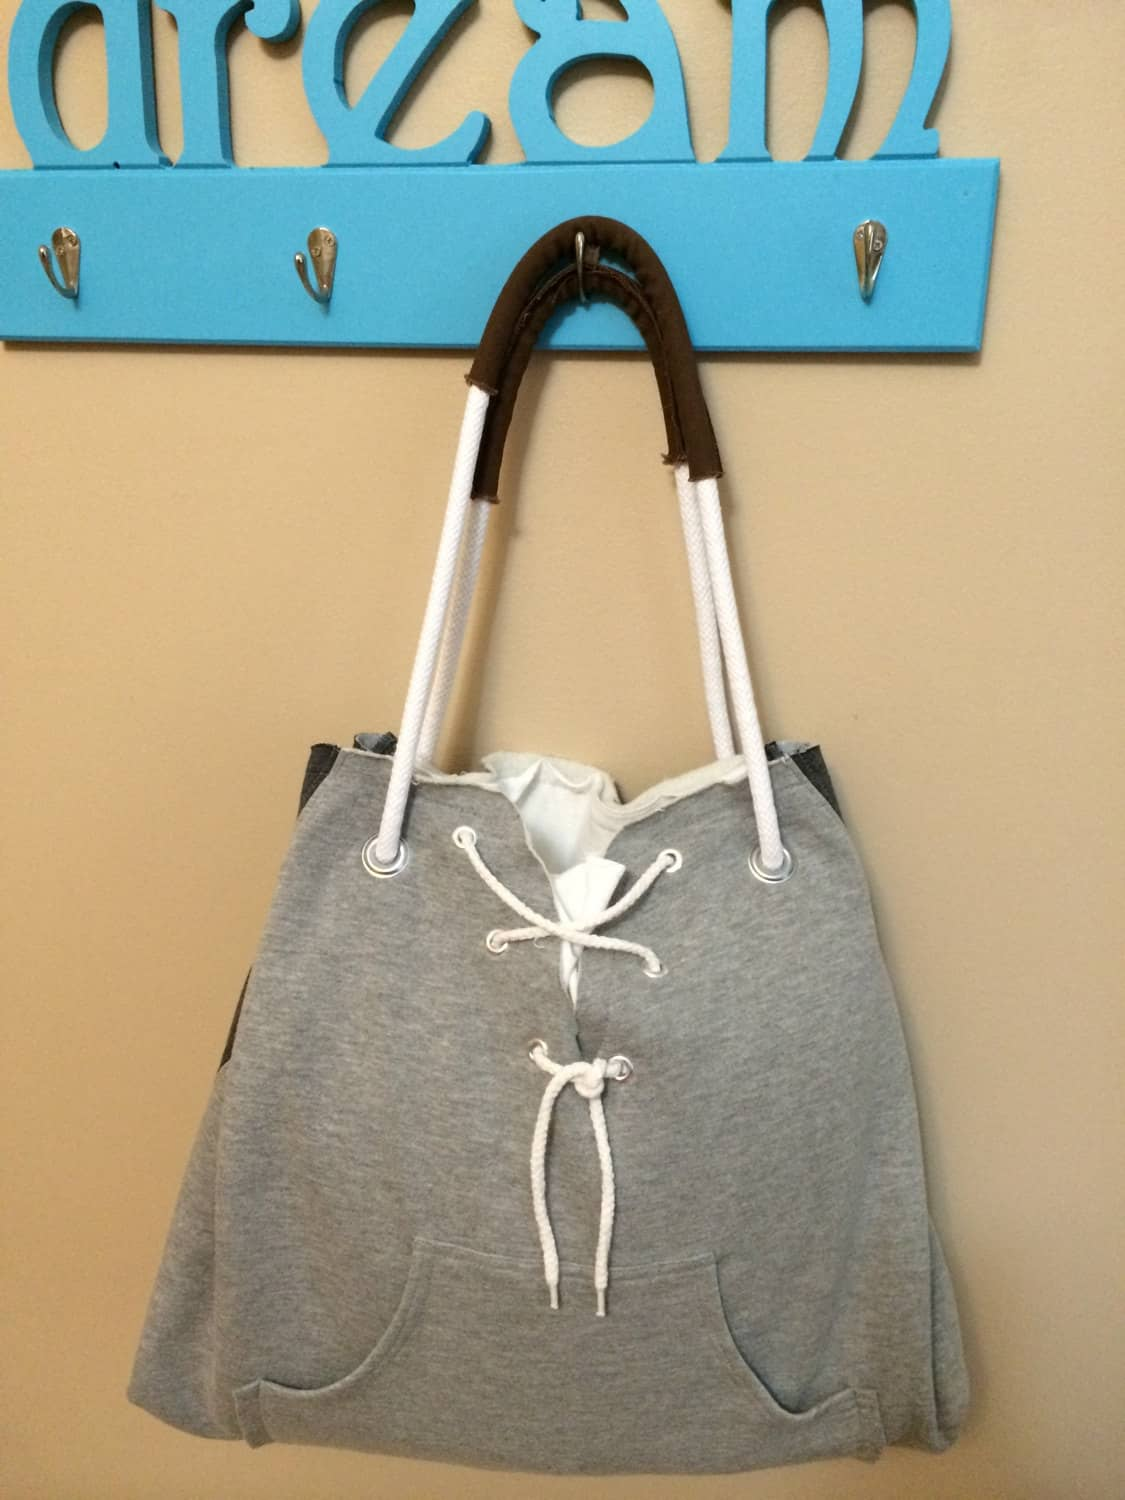 Sport sweatshirt tote bag